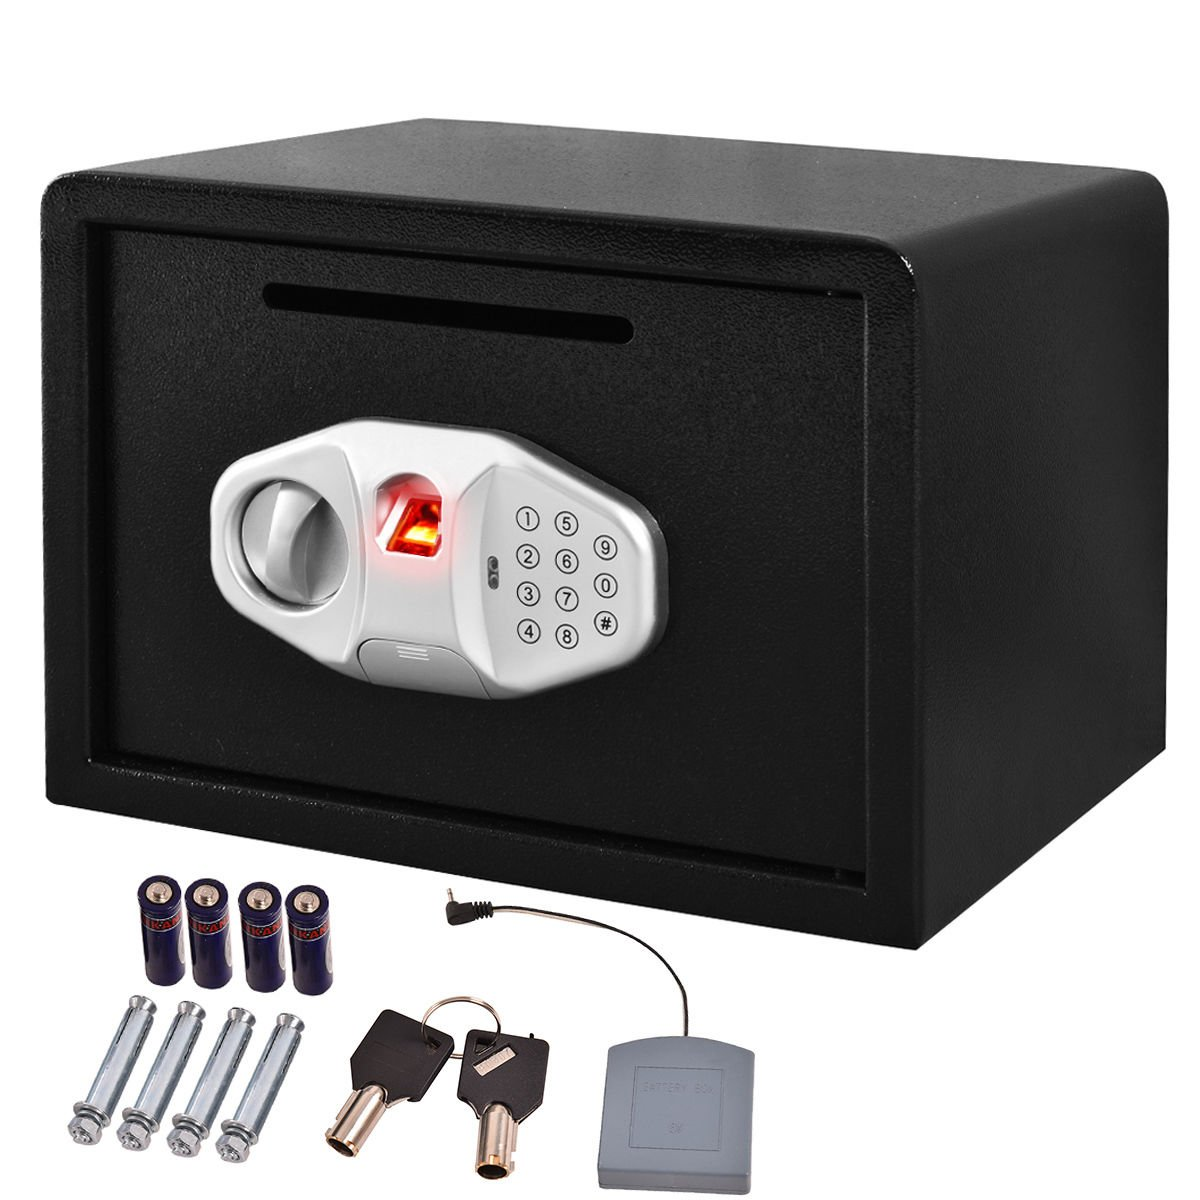 Safstar Cabinet Safes Biometric Fingerprint Electronic Digital Keypad Lock Security Box for Cash Jewelry Passport Guns Collectibles (FS Fingerprint: 9.8'' x 13.7'' x 9.8'')